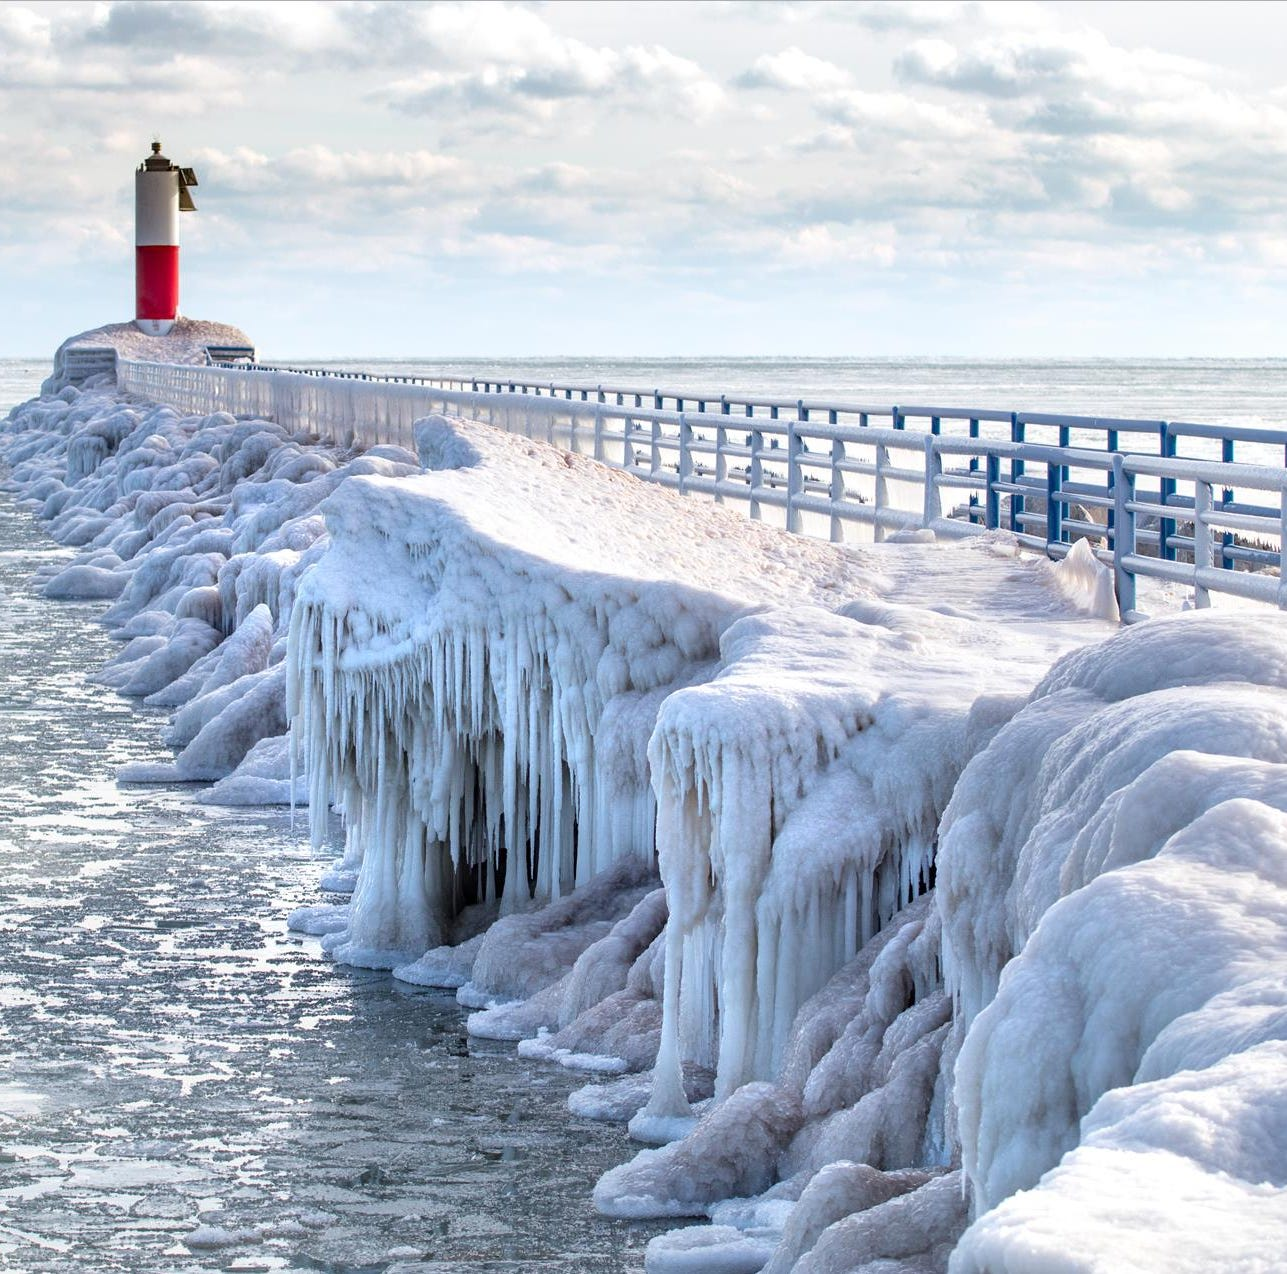 Manitowoc Mariners Trail calendar photo contest winners named